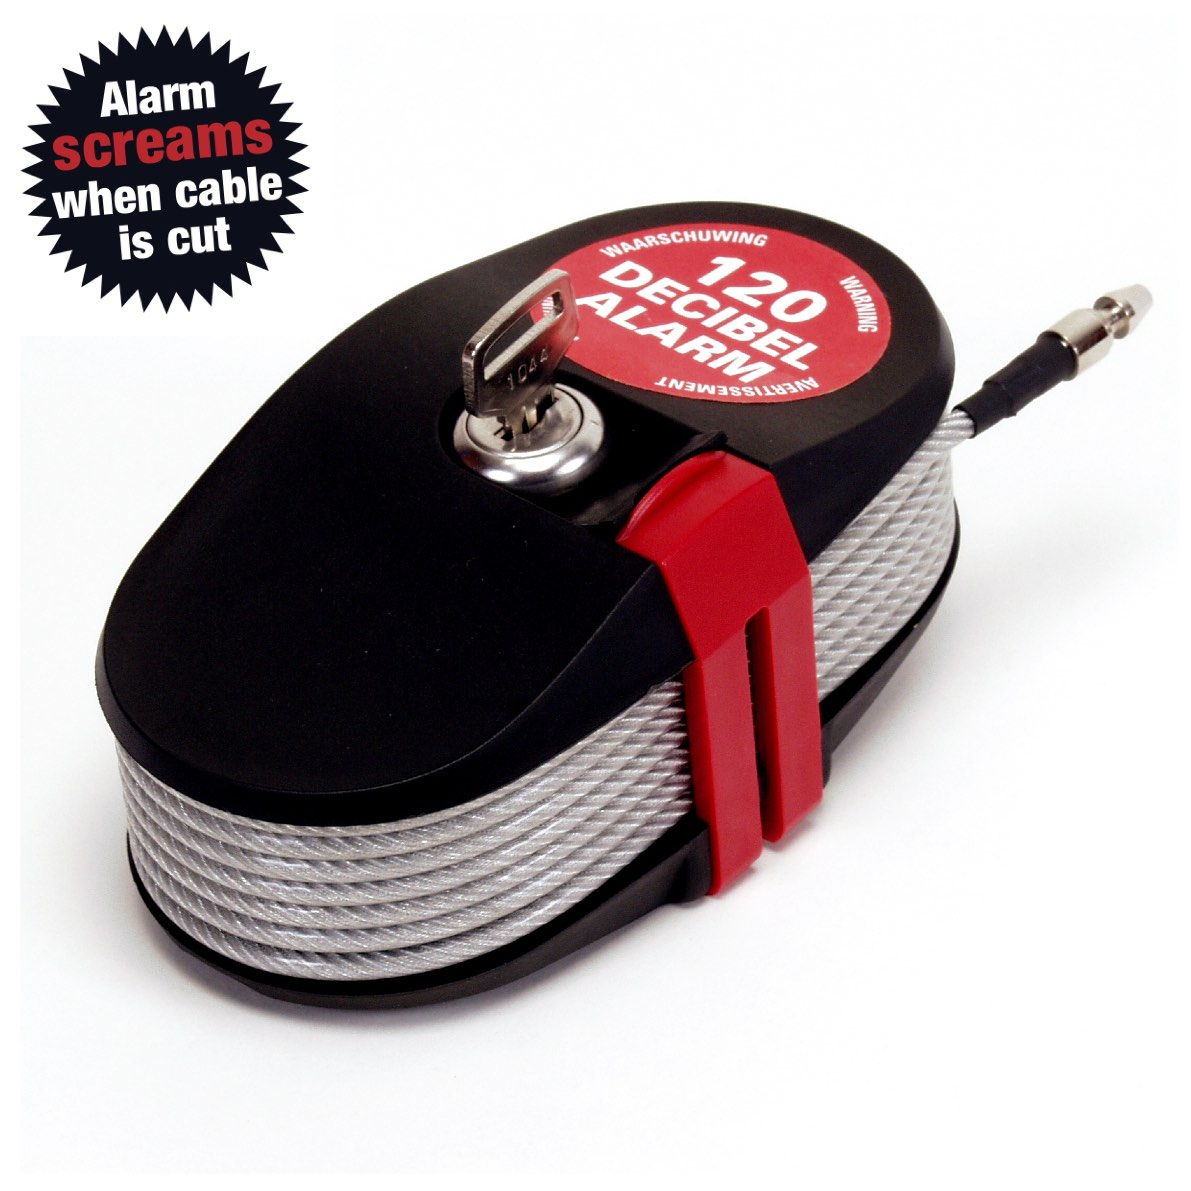 Cable Lock Alarm